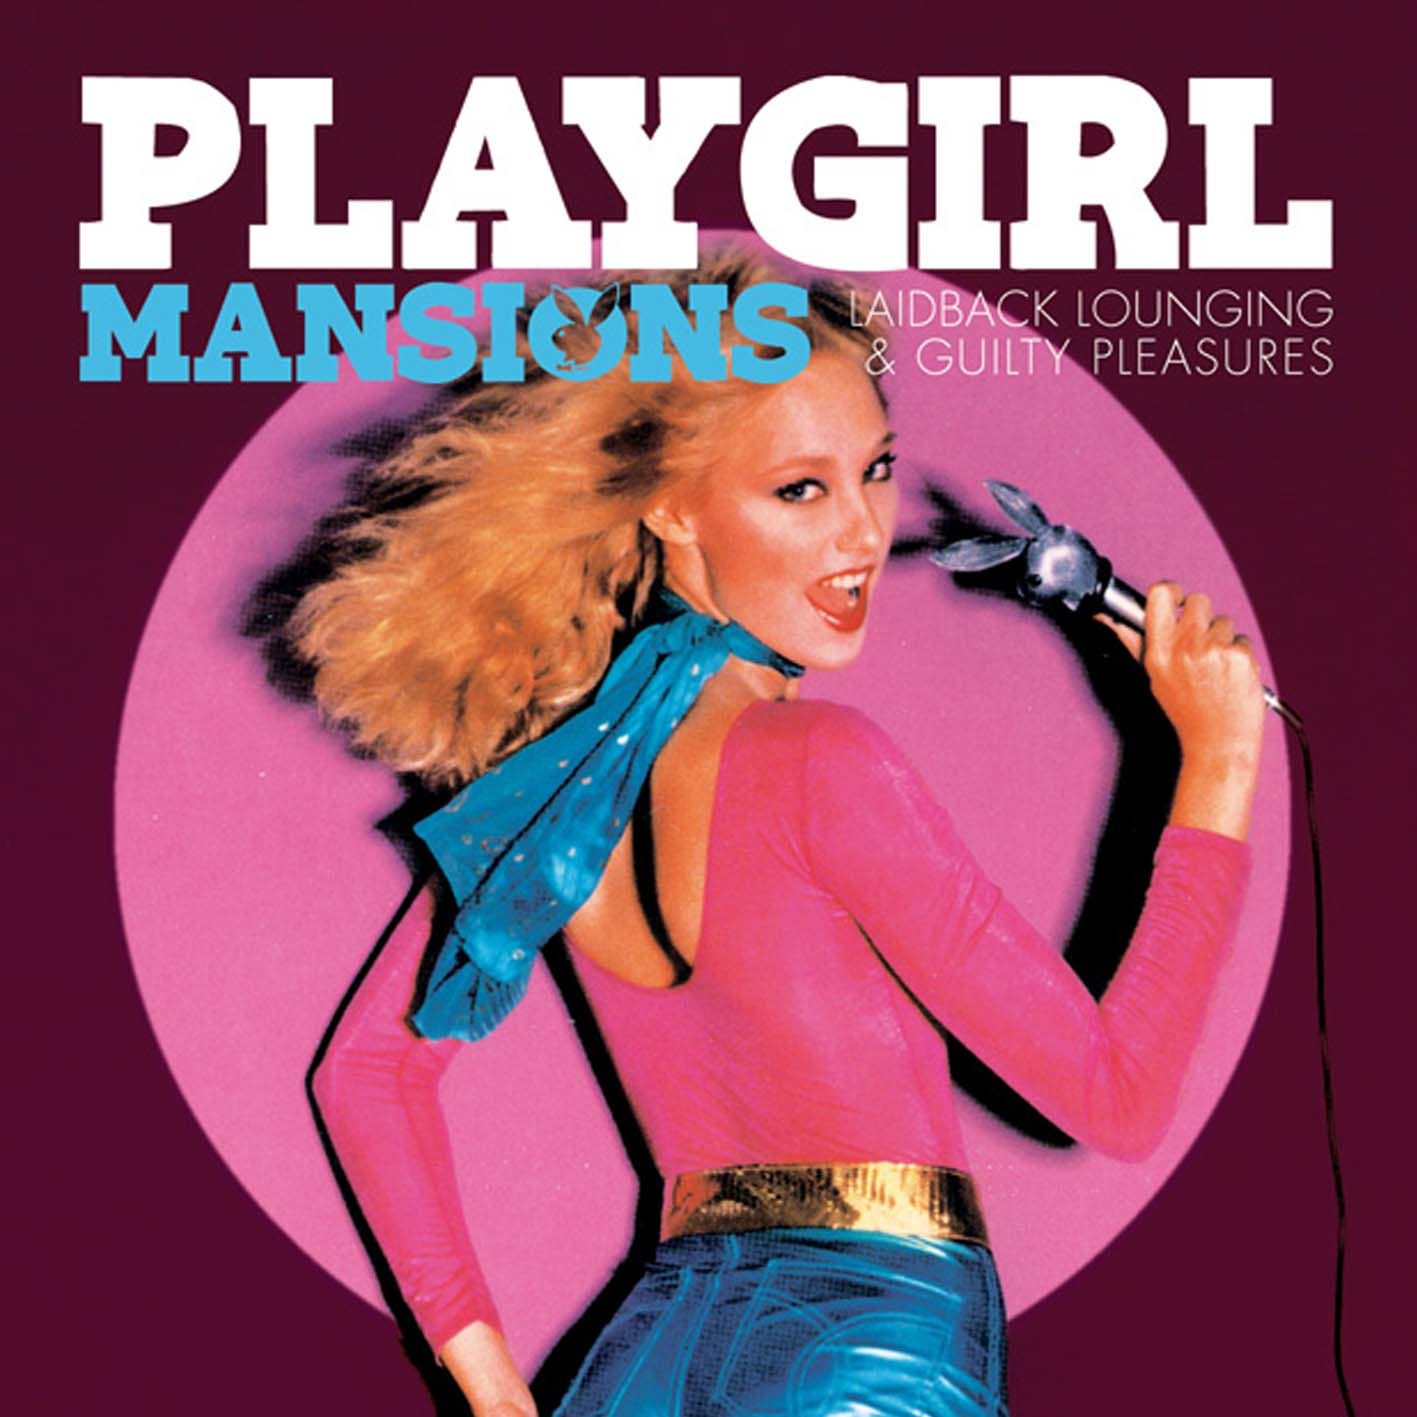 Playgirl Mansions MIX - DJ Trendy wendy